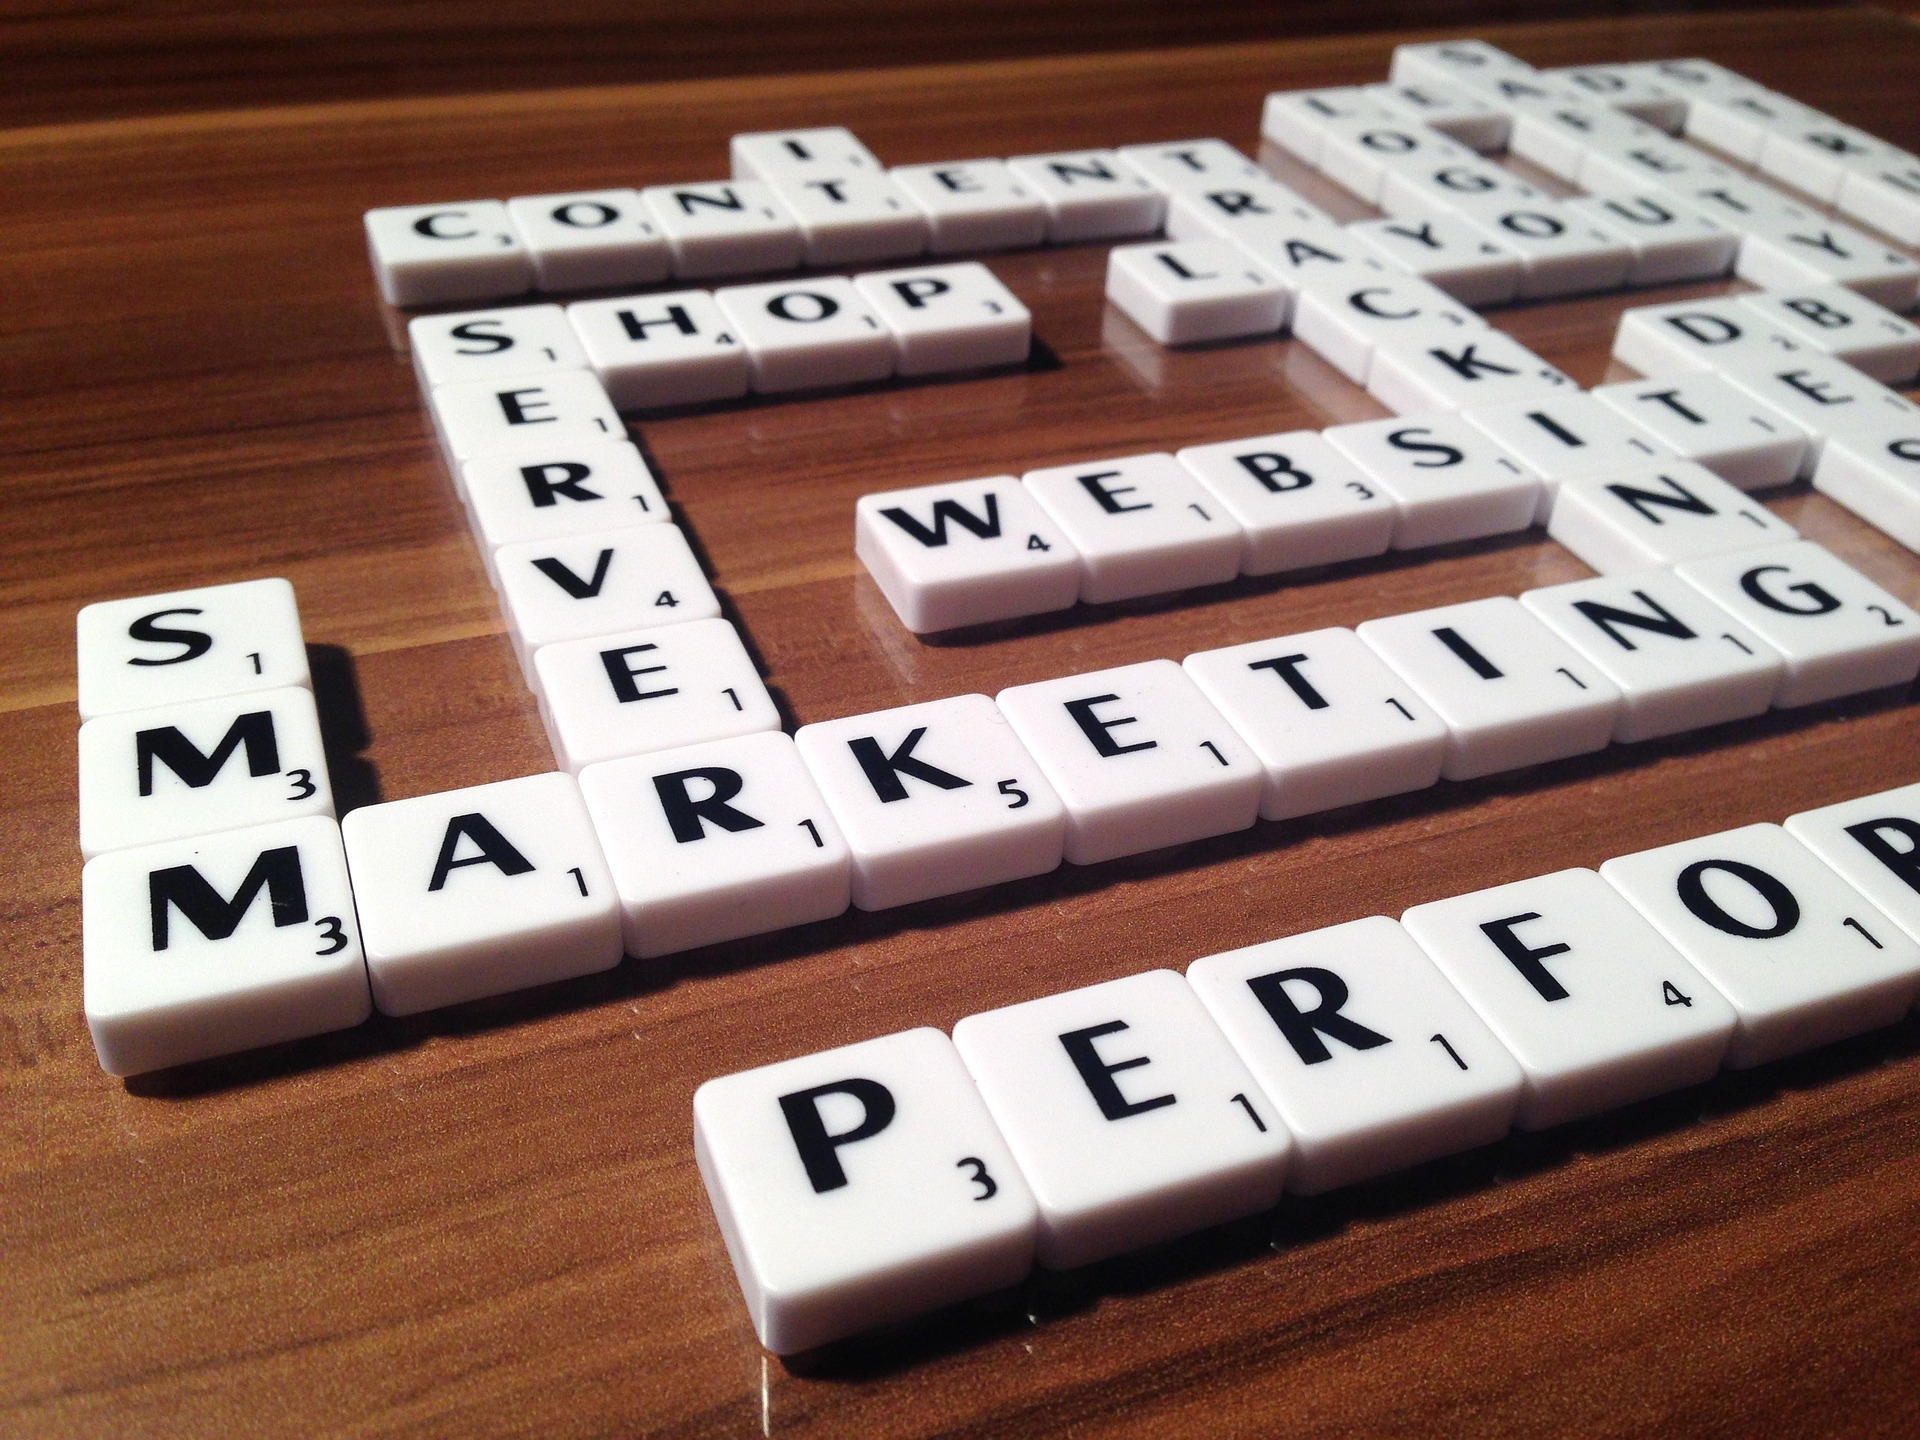 White scrabble pieces on wooden floor arranged into words